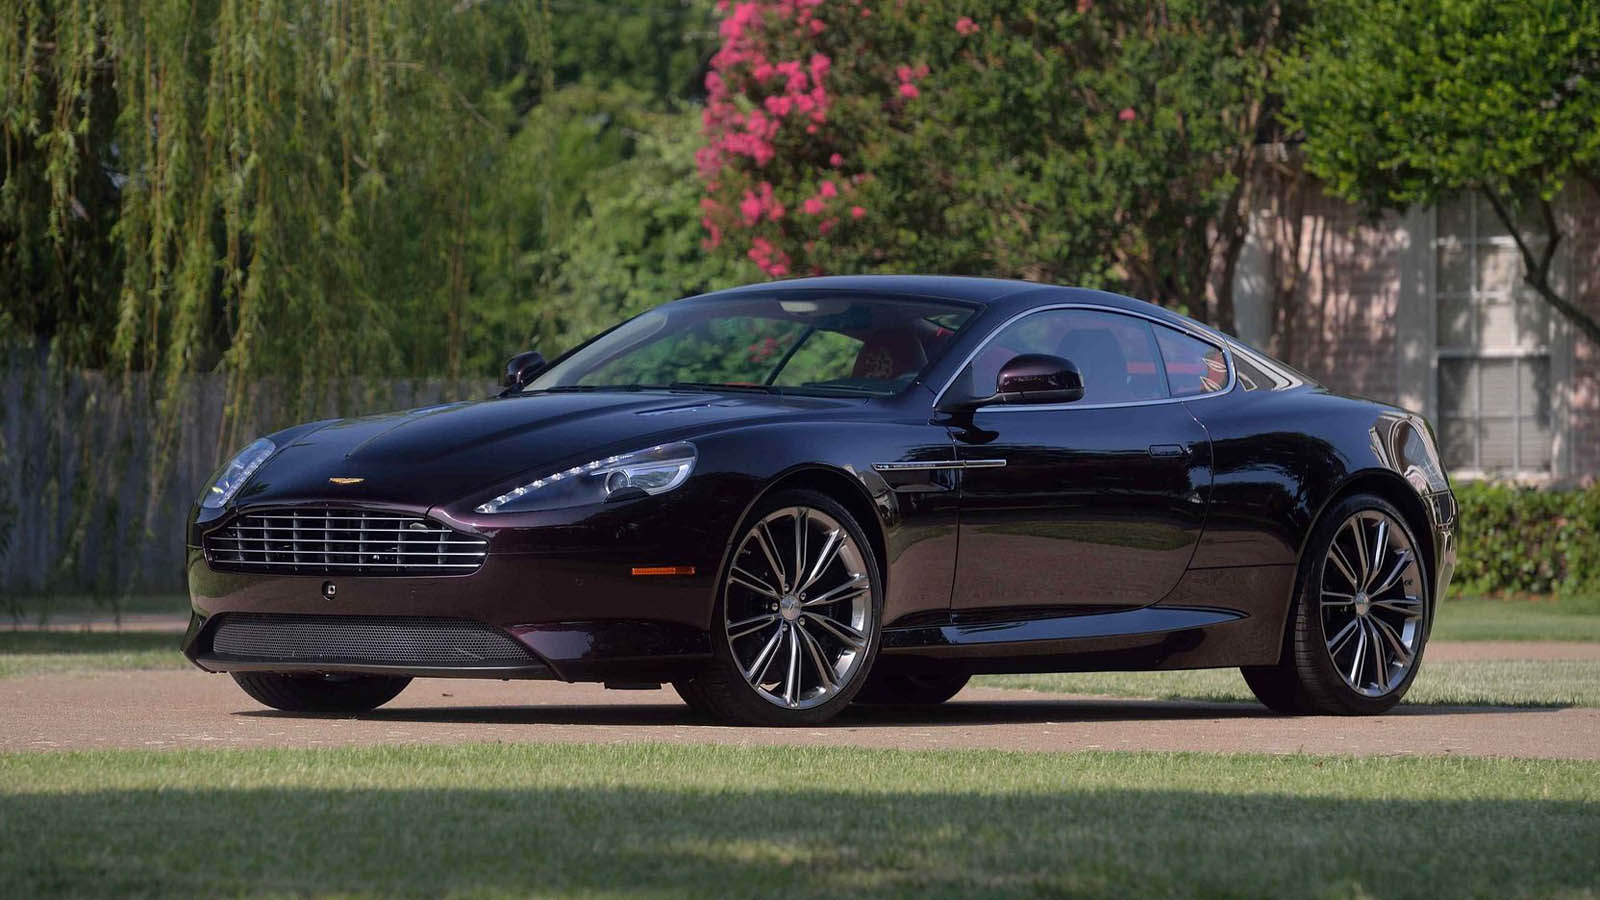 Aston_Martin_Virage_Dragon_88_Edition_08